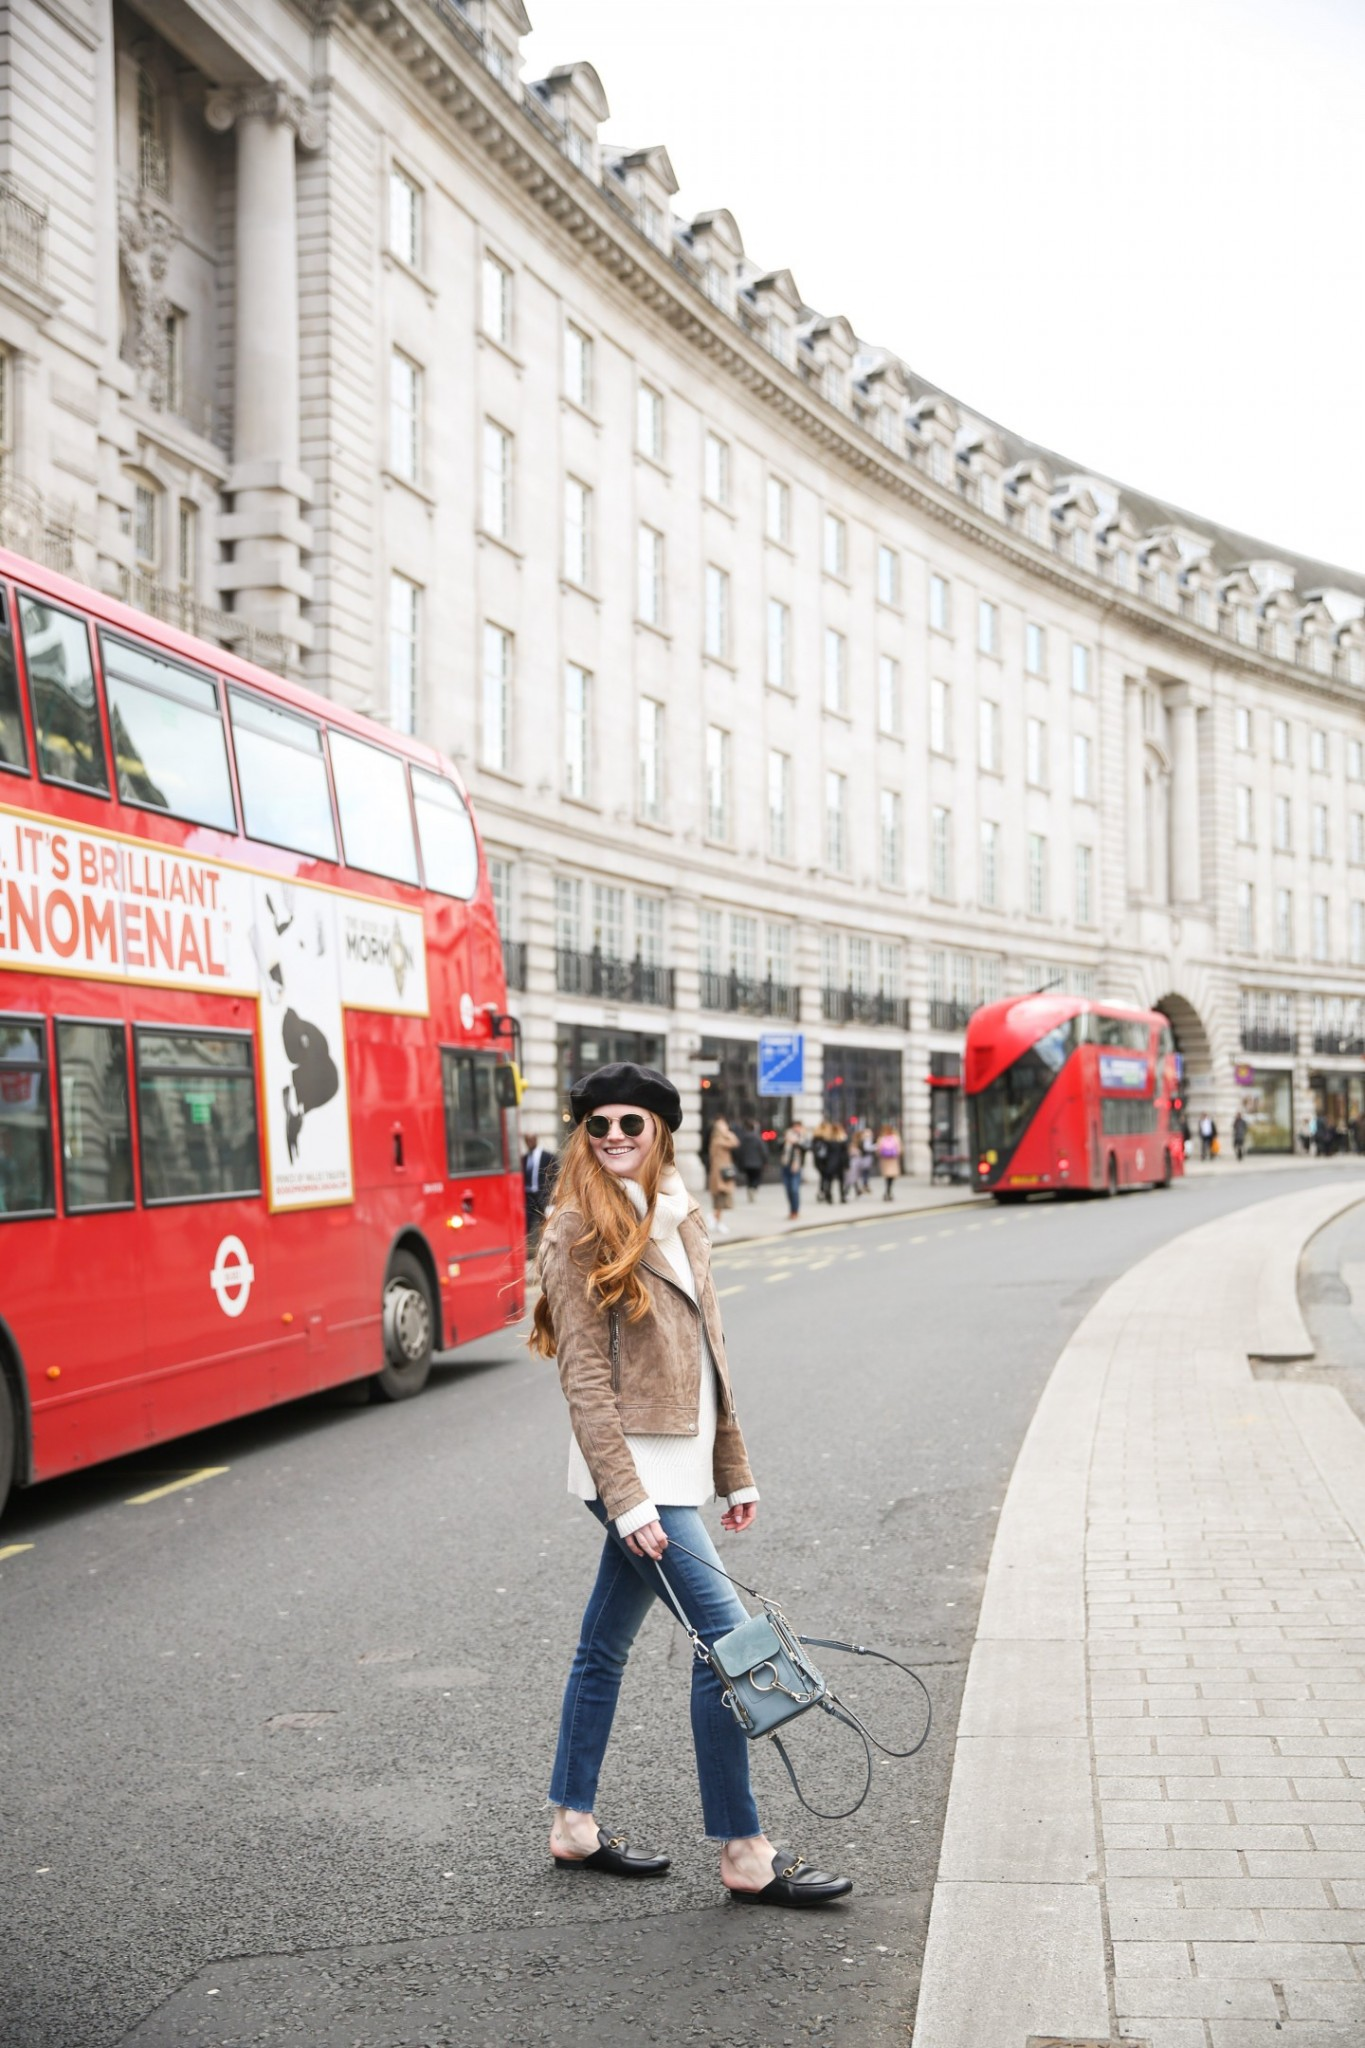 Lifestyle blogger Mollie Moore is moving to London and shares all the details about her upcoming move | Top London and US life and style blogger, Mollie Moore shares her 2018 year in review: moving to London